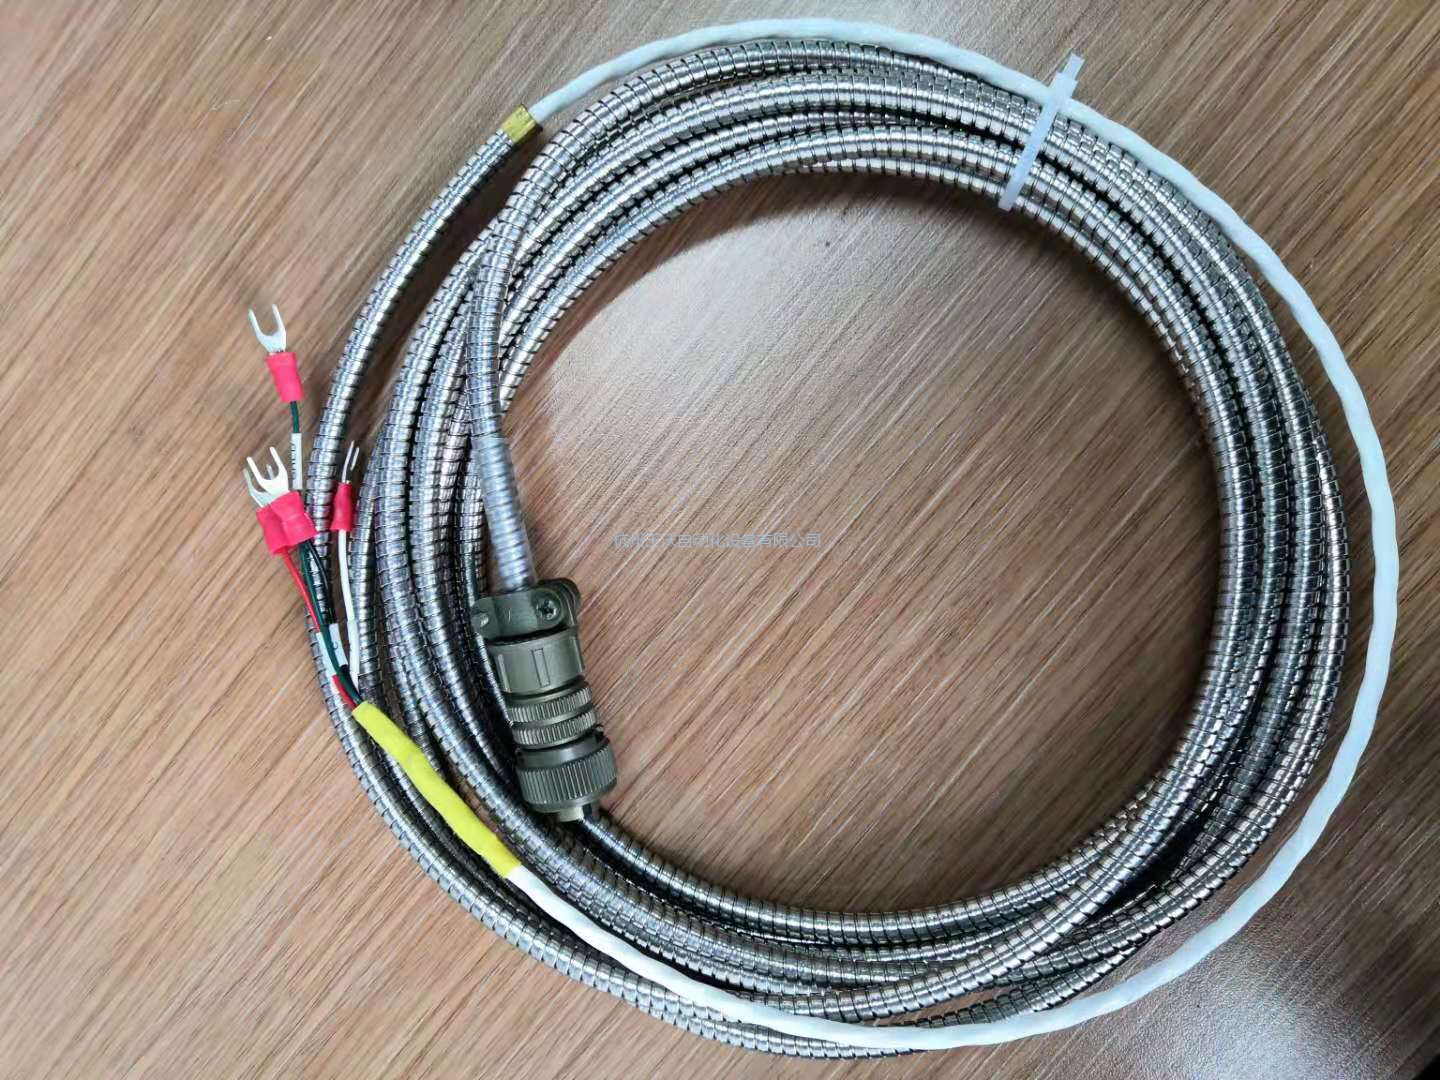 177230 interconnect cable with(without) armor(自配)